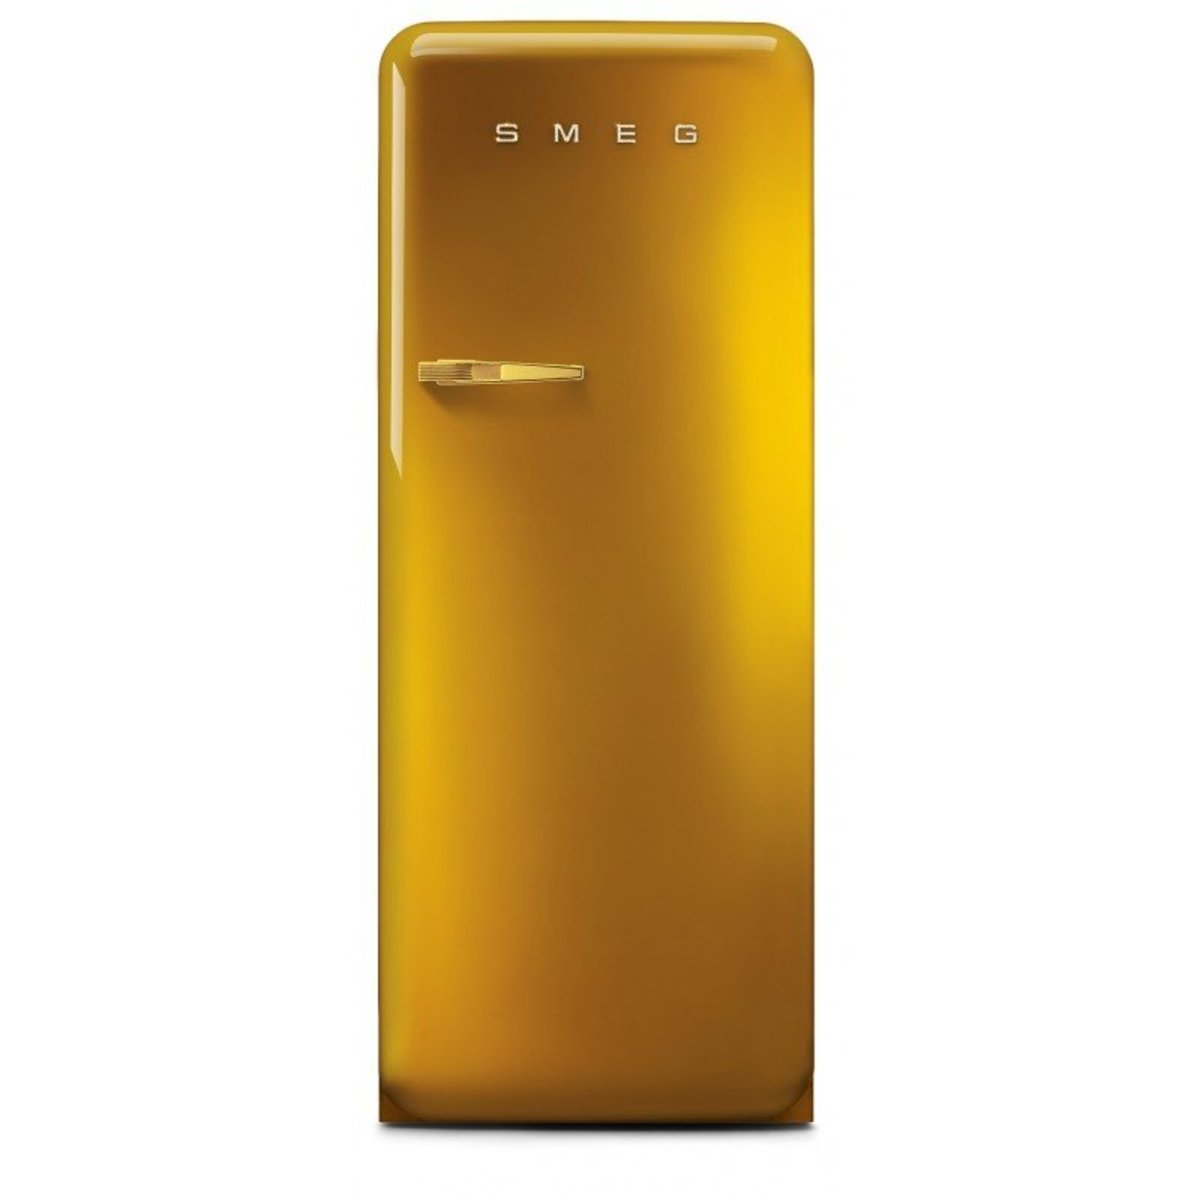 50s style fridge ice compartment Gold, FAB28QDG [Pre-order]